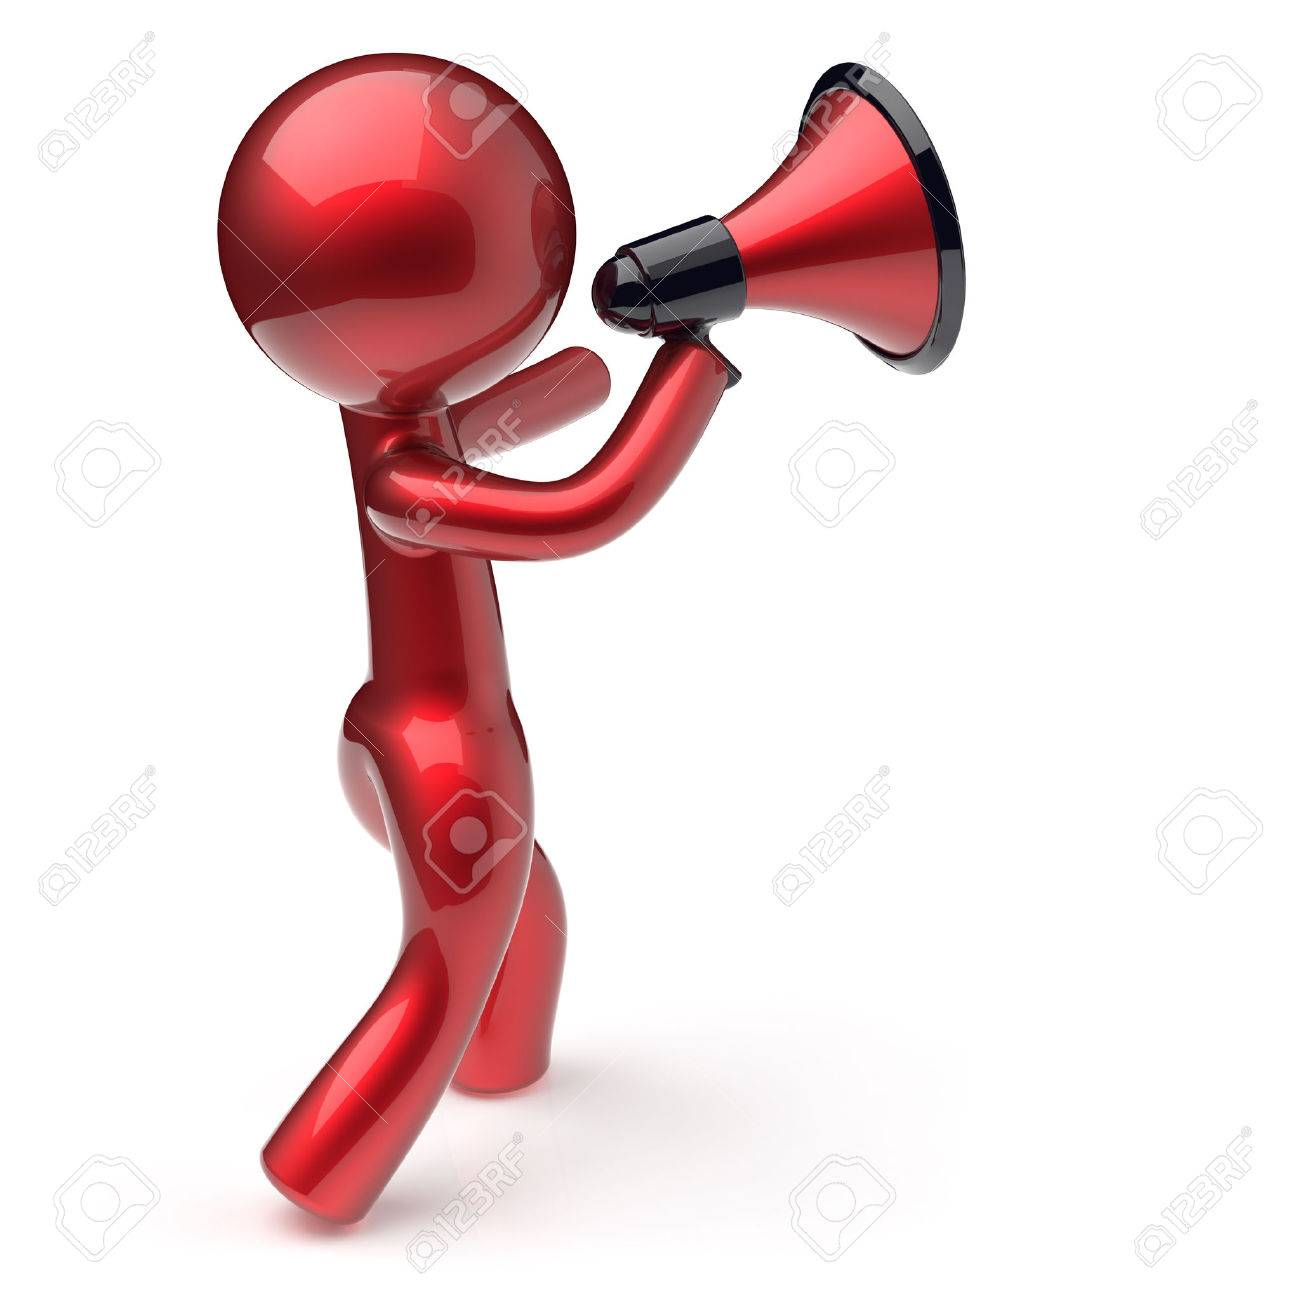 1300x1300 Announcement Man Megaphone Character Speaking Making News Red